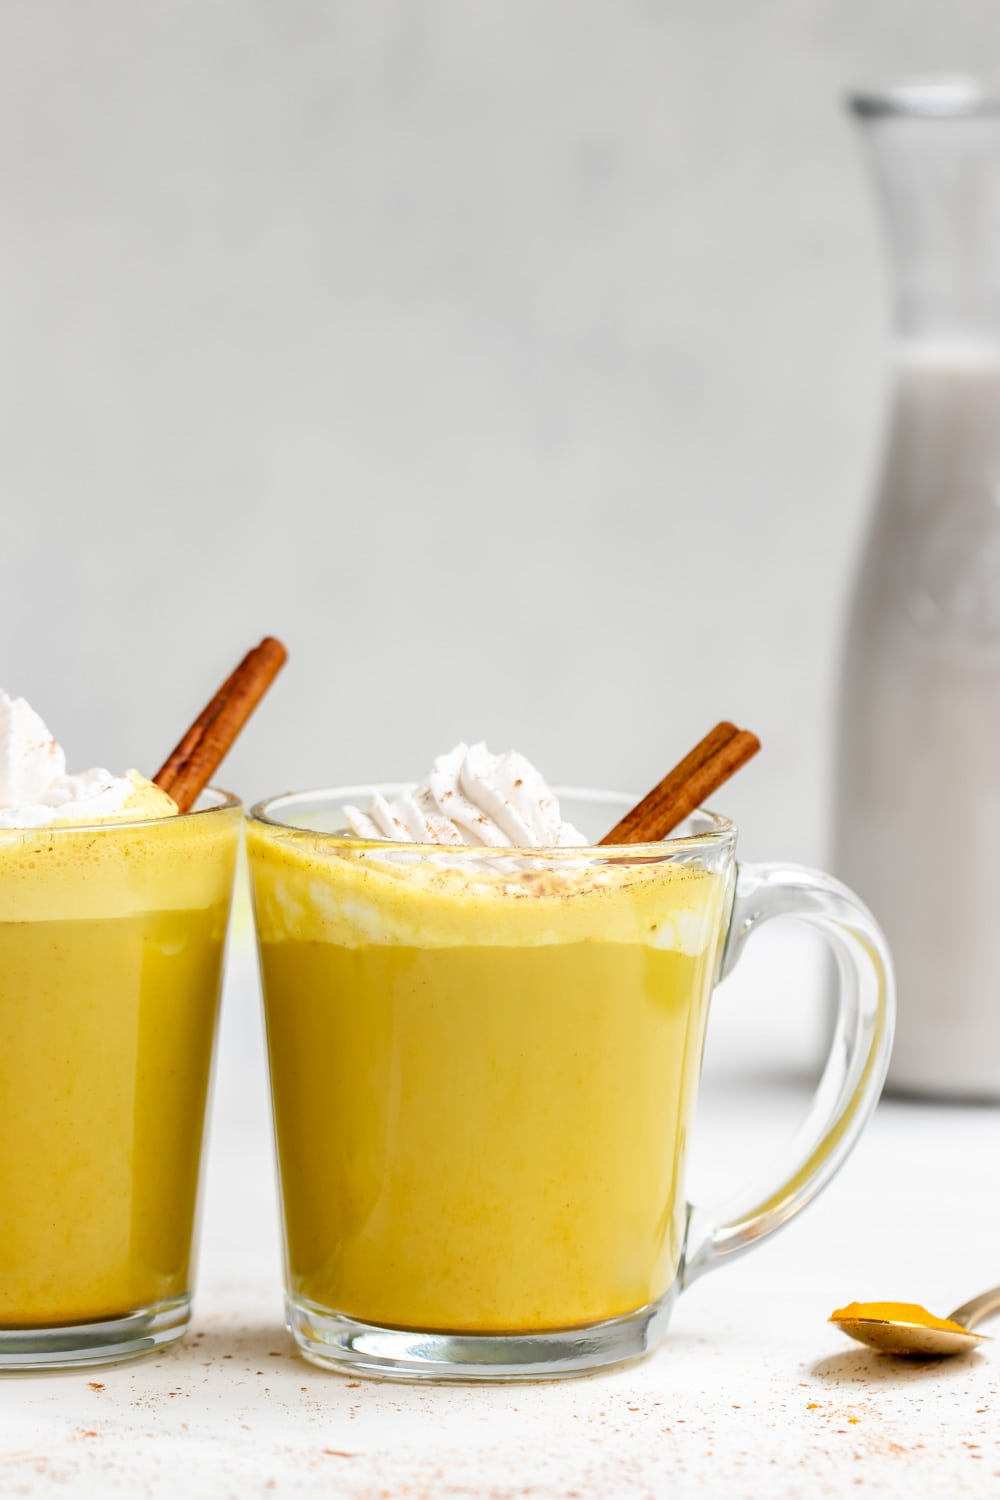 Golden milk latte with cinnamon sticks in glass mugs.